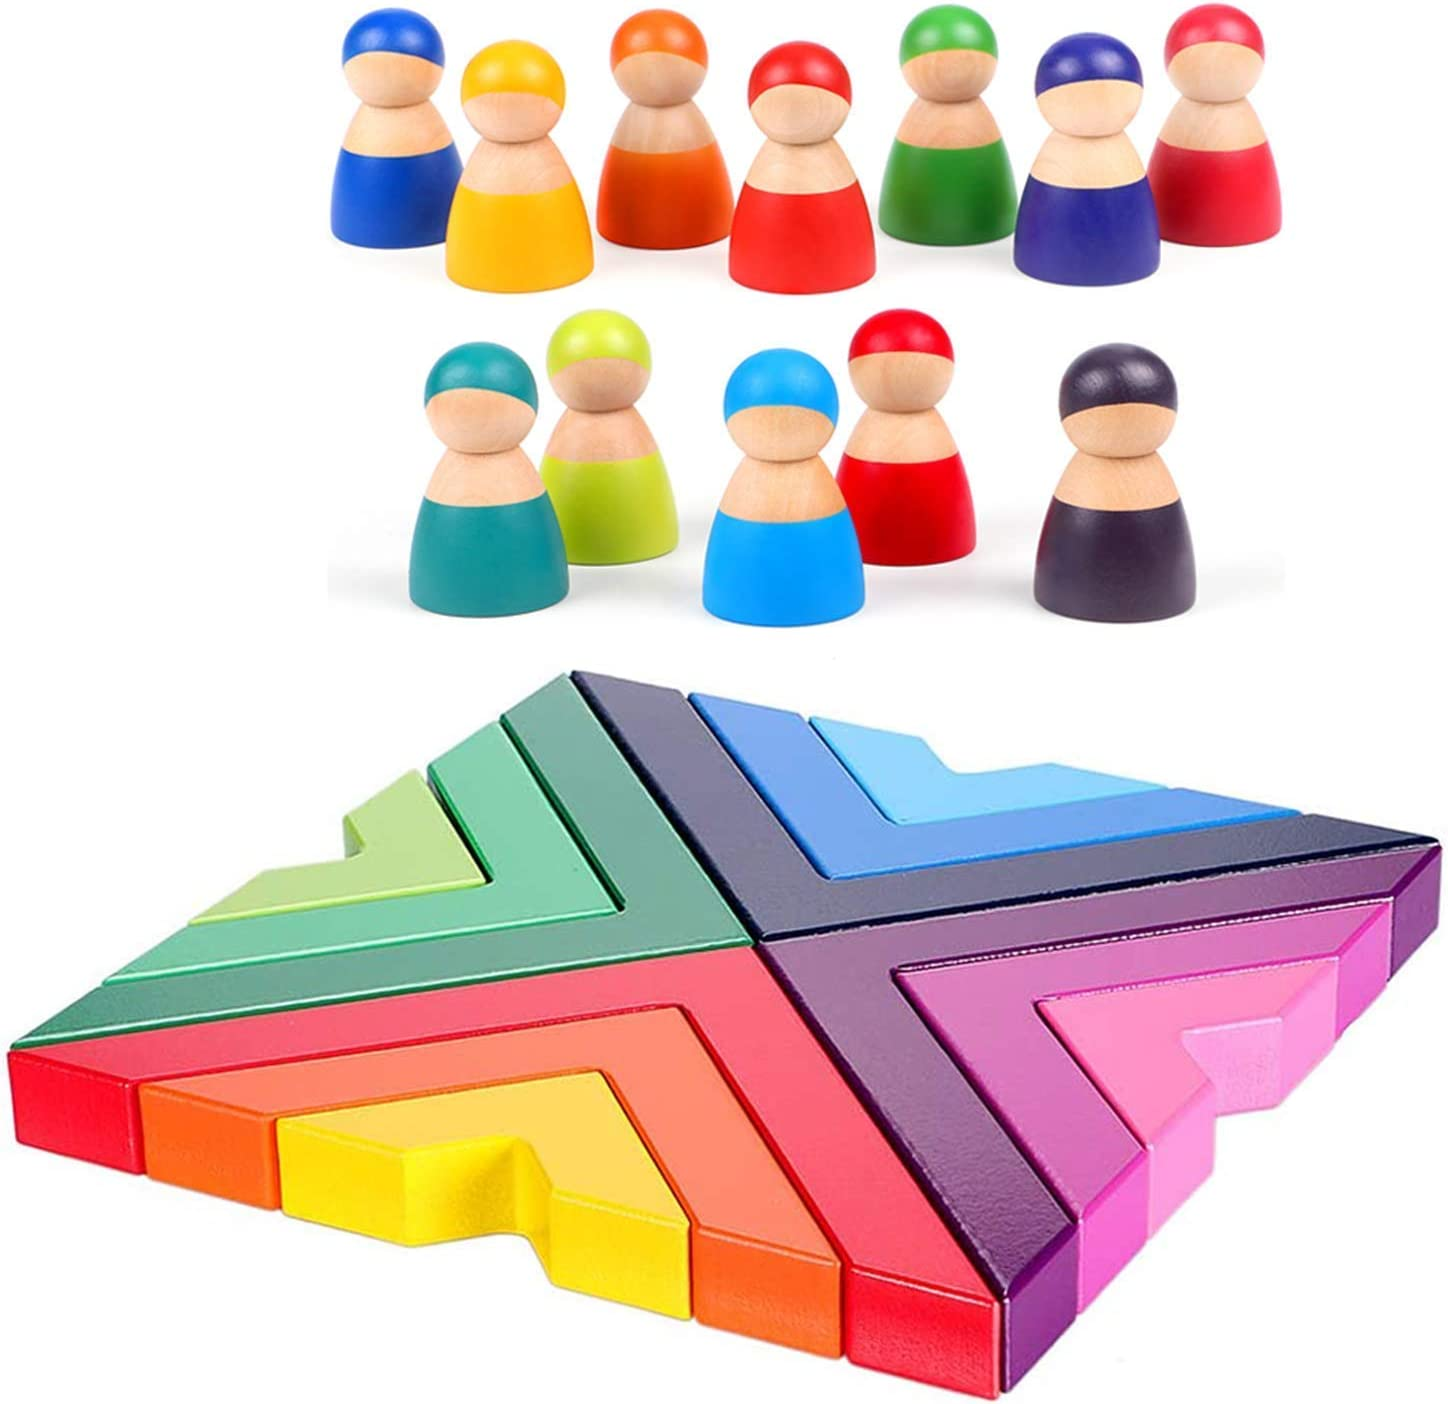 Over Super popular specialty store item handling ☆ Lewo Wooden Rainbow Stacking Game Nesting fo Dolls Peg Toys Wood